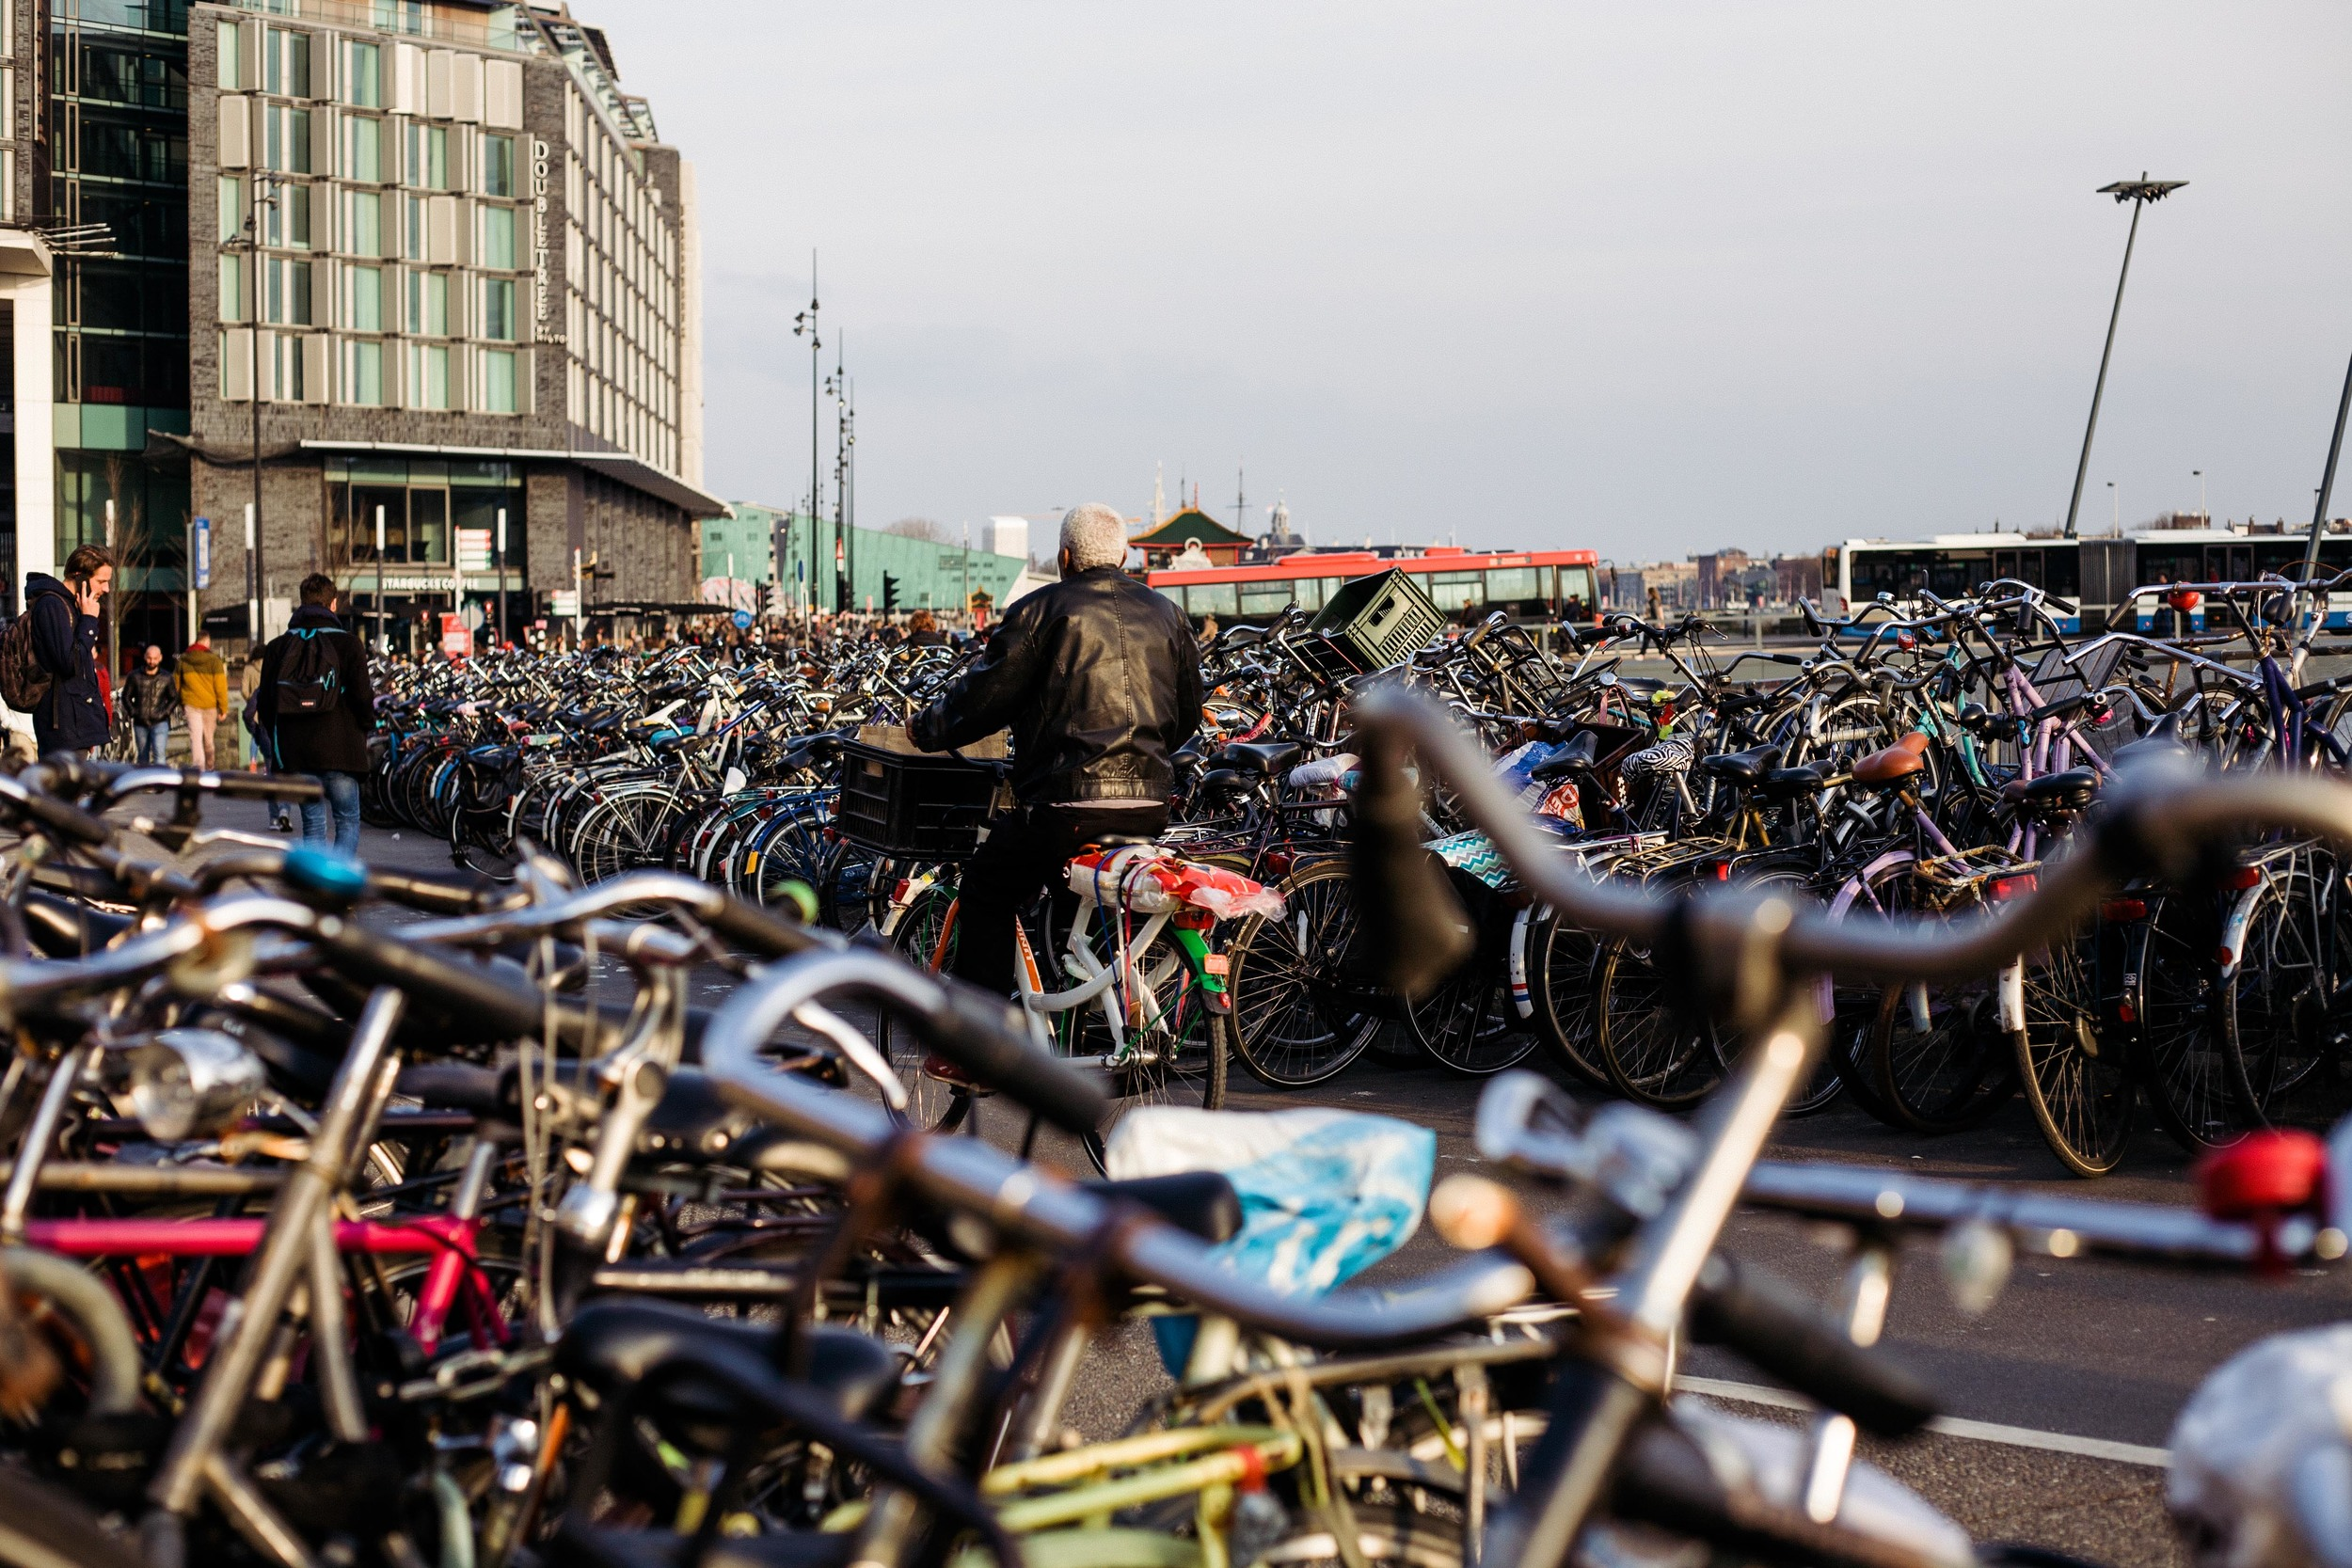 Amsterdam-Netherlands-Street-Photography-Bikes